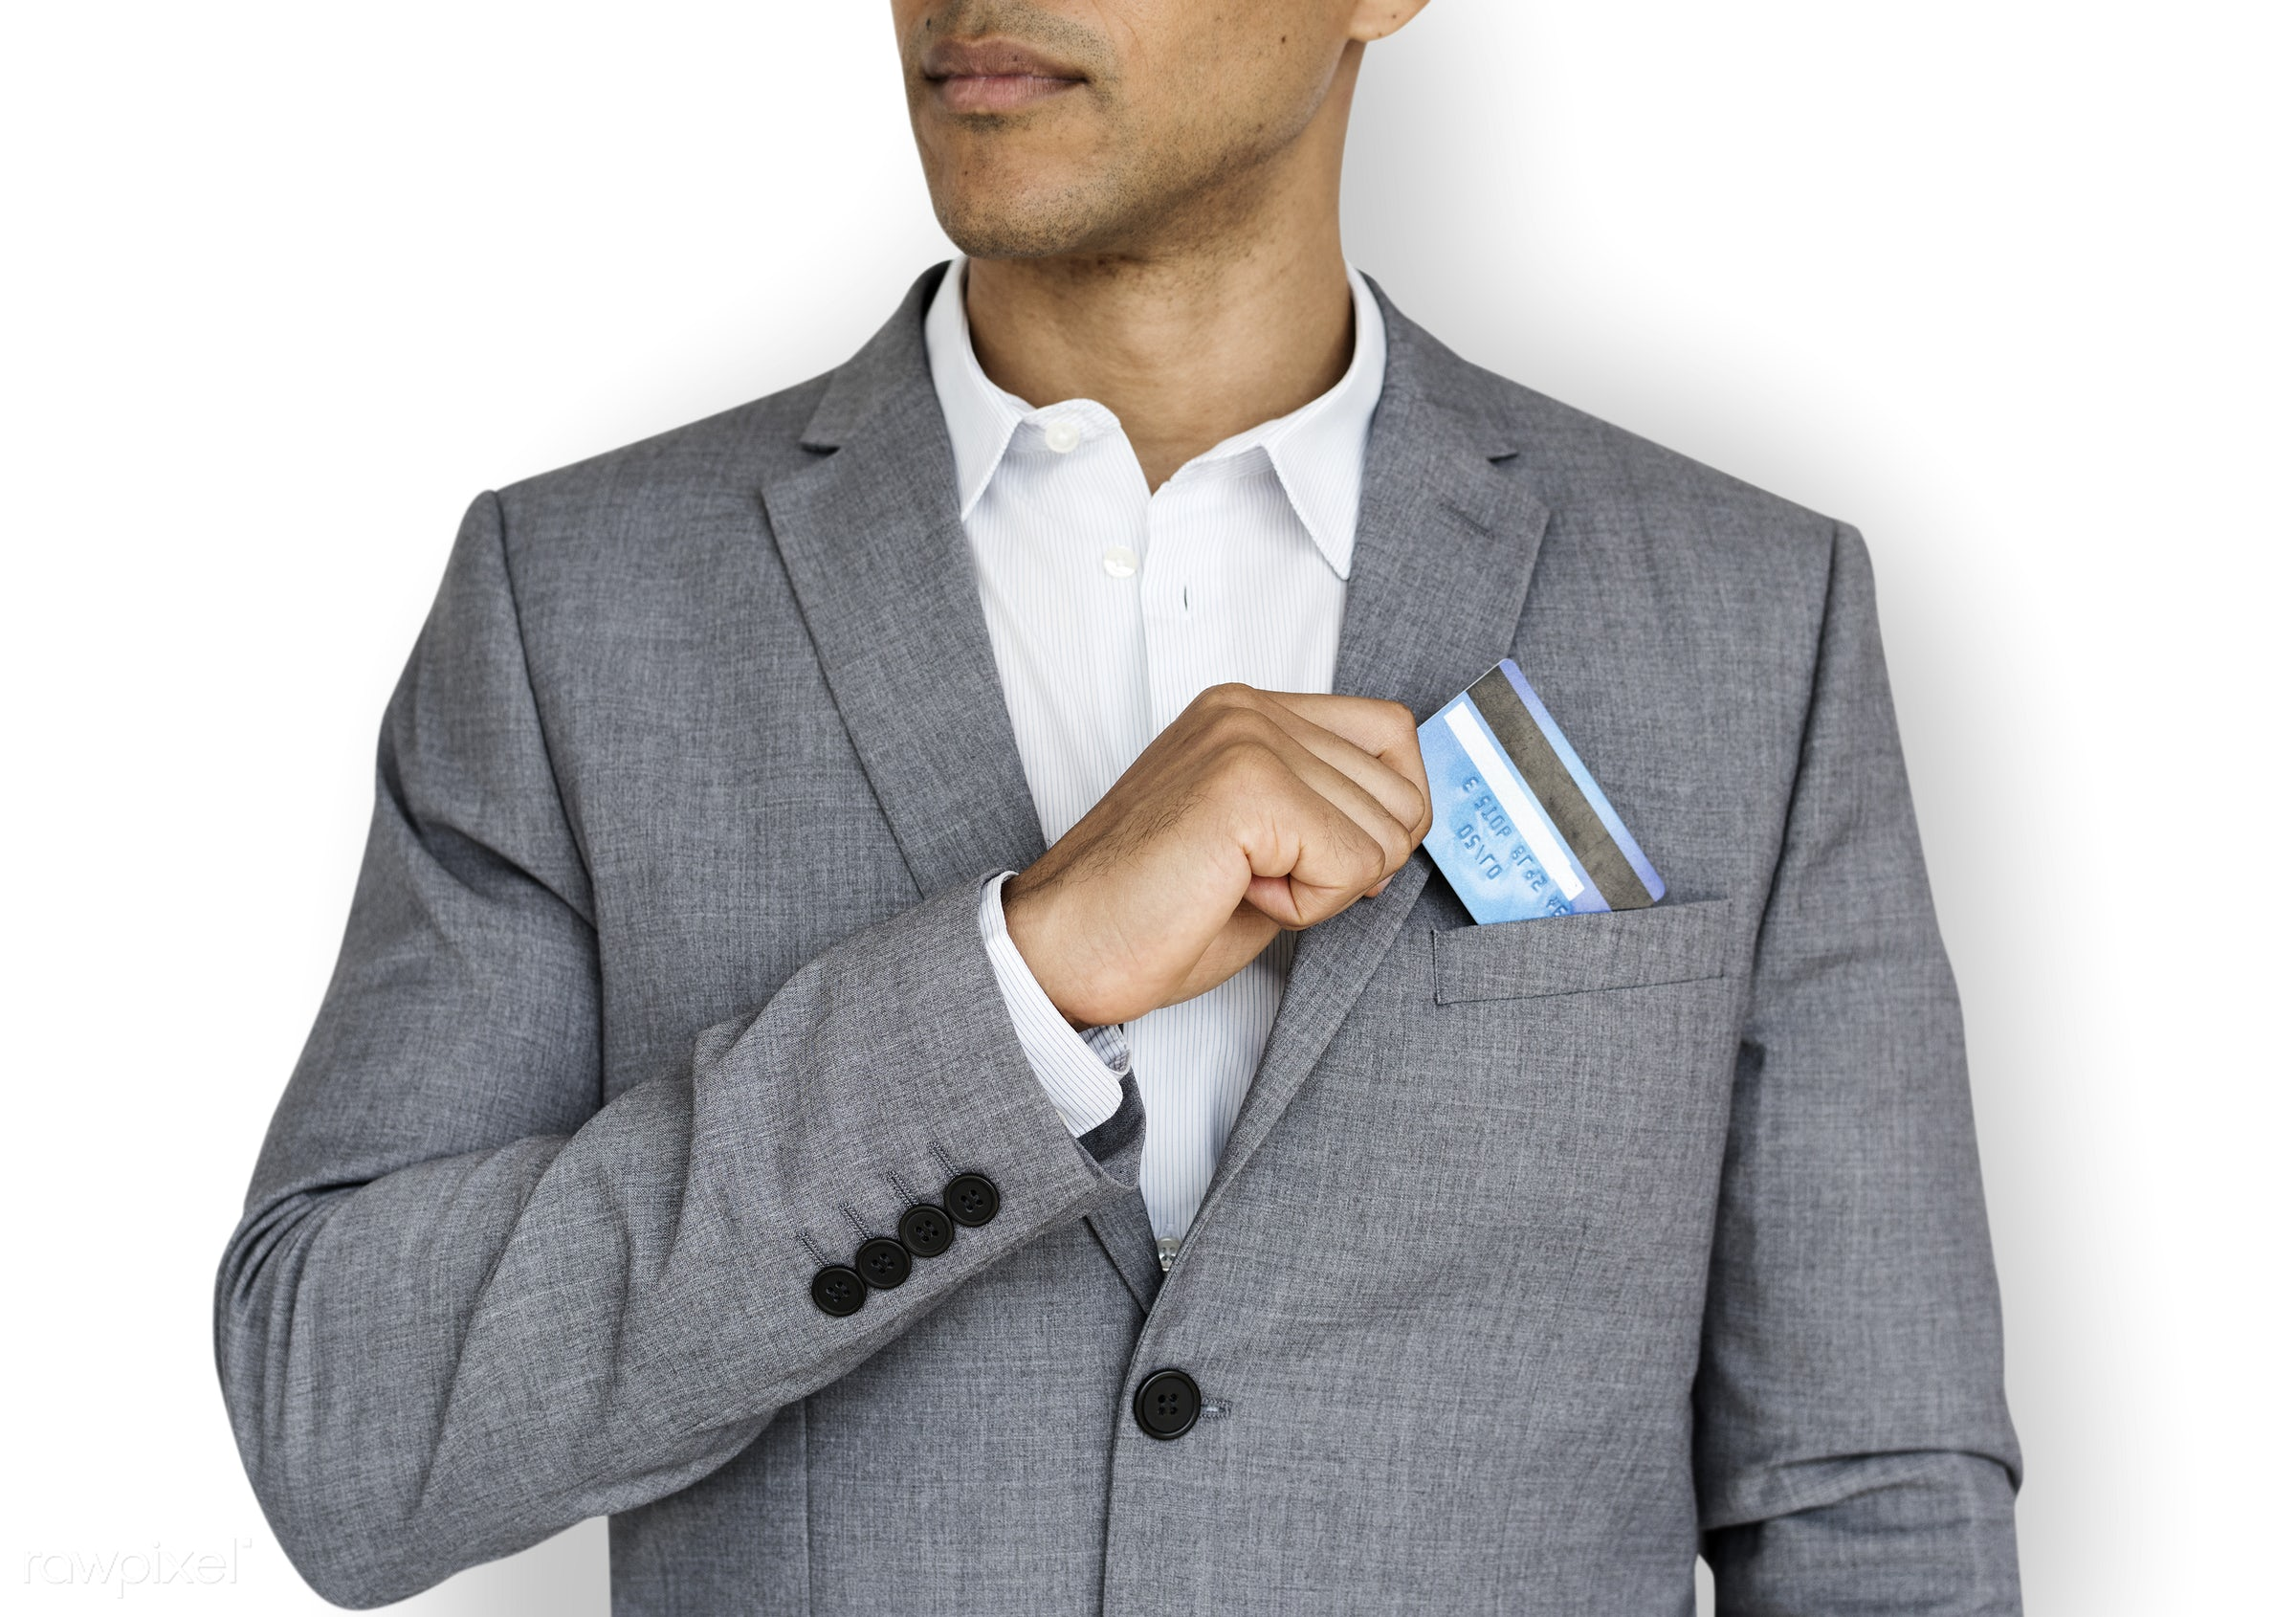 studio, expression, person, bill, business wear, paying bill, people, formal dressing, business, pay, card, paying, credit,...